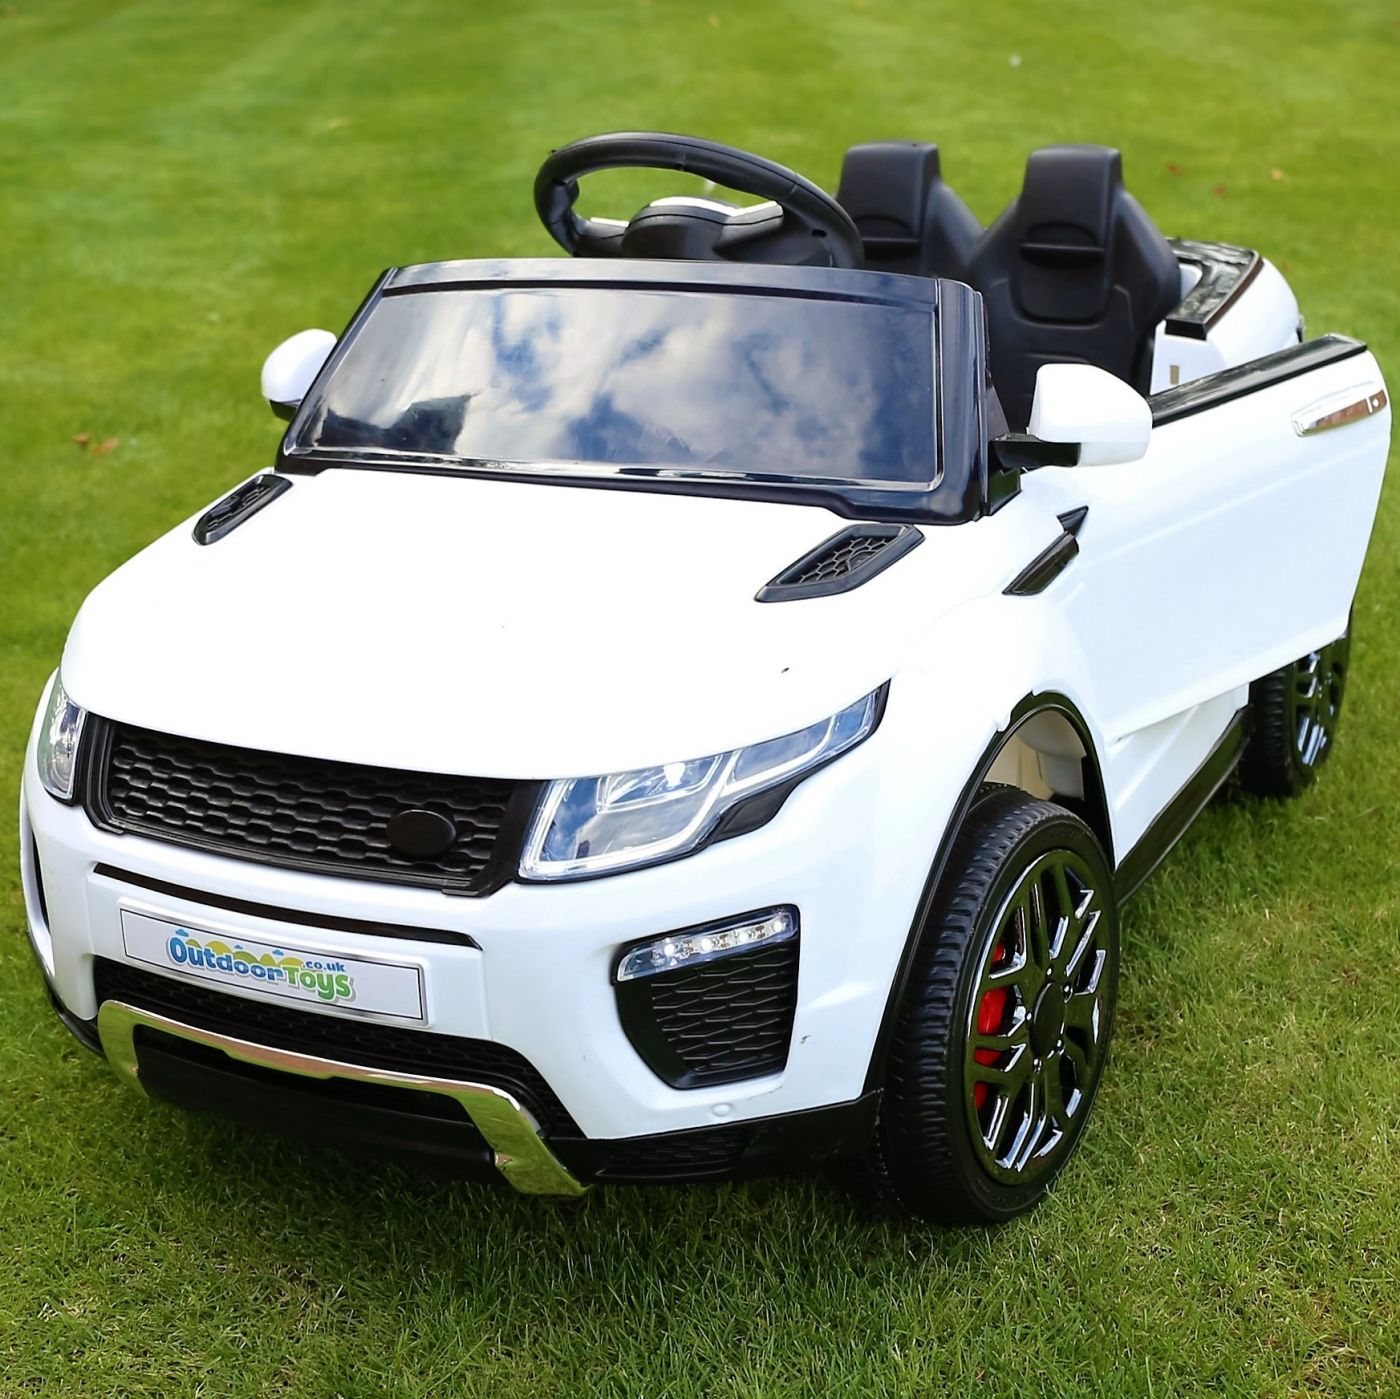 27b67488a6b Range Rover Evoque Style 12v Child s Ride On Car - White For Just £149.95